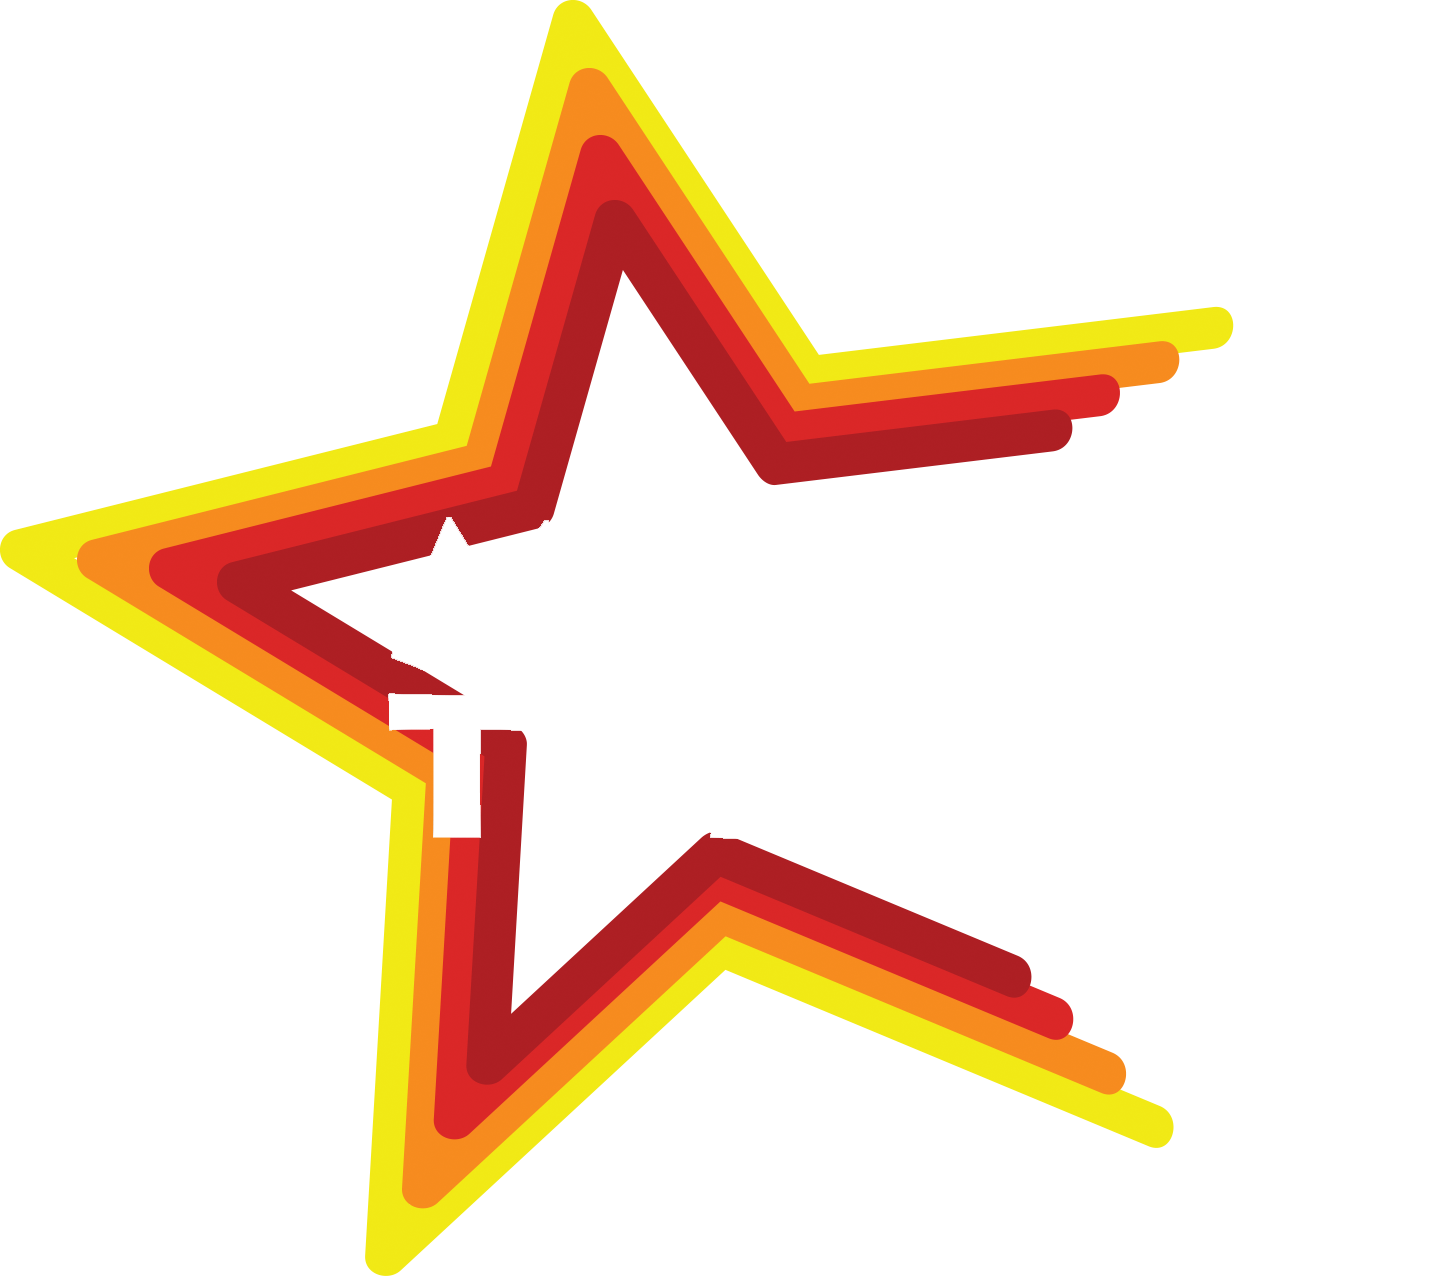 Moore Theatres star logo words white